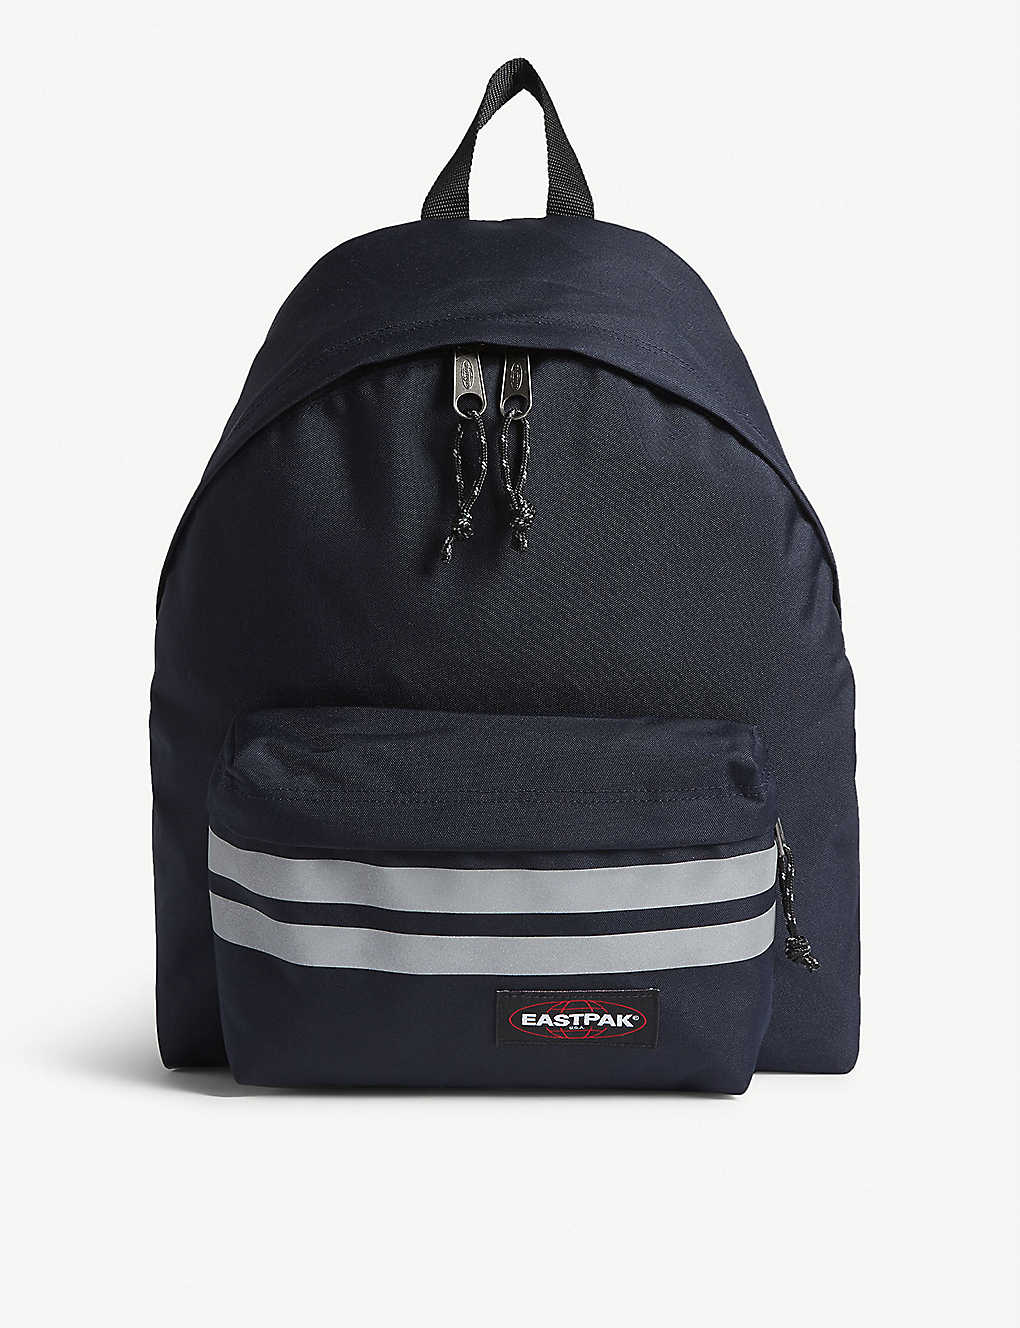 8e8caeefbaf EASTPAK - Padded Pak'r reflective stripe backpack | Selfridges.com